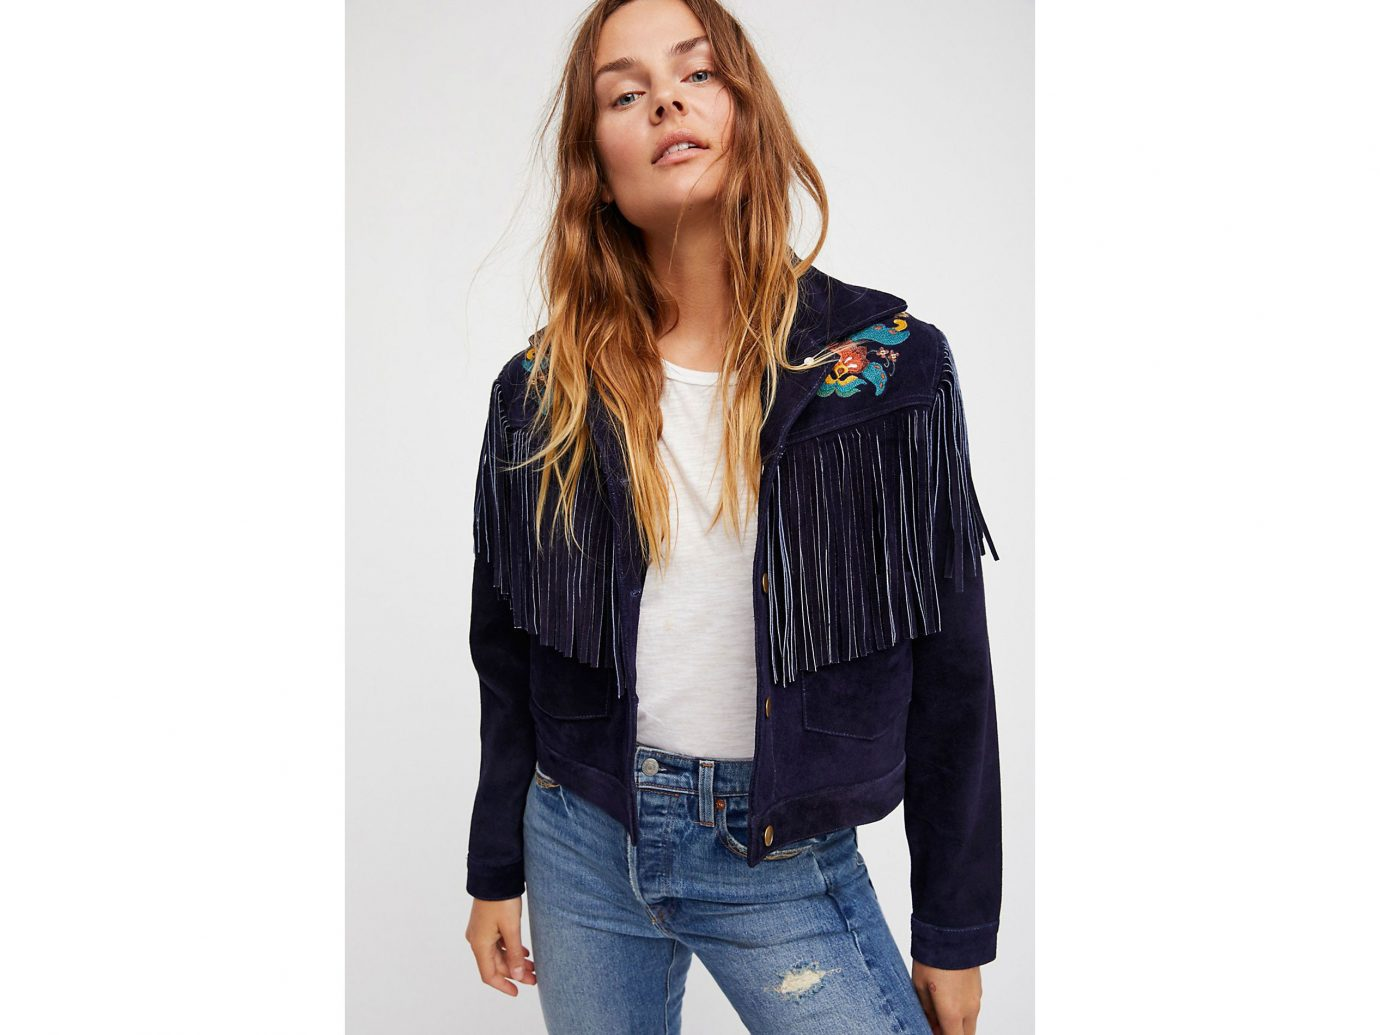 Travel Shop Travel Trends person clothing woman jacket standing jeans denim fashion model posing leather jacket sleeve leather